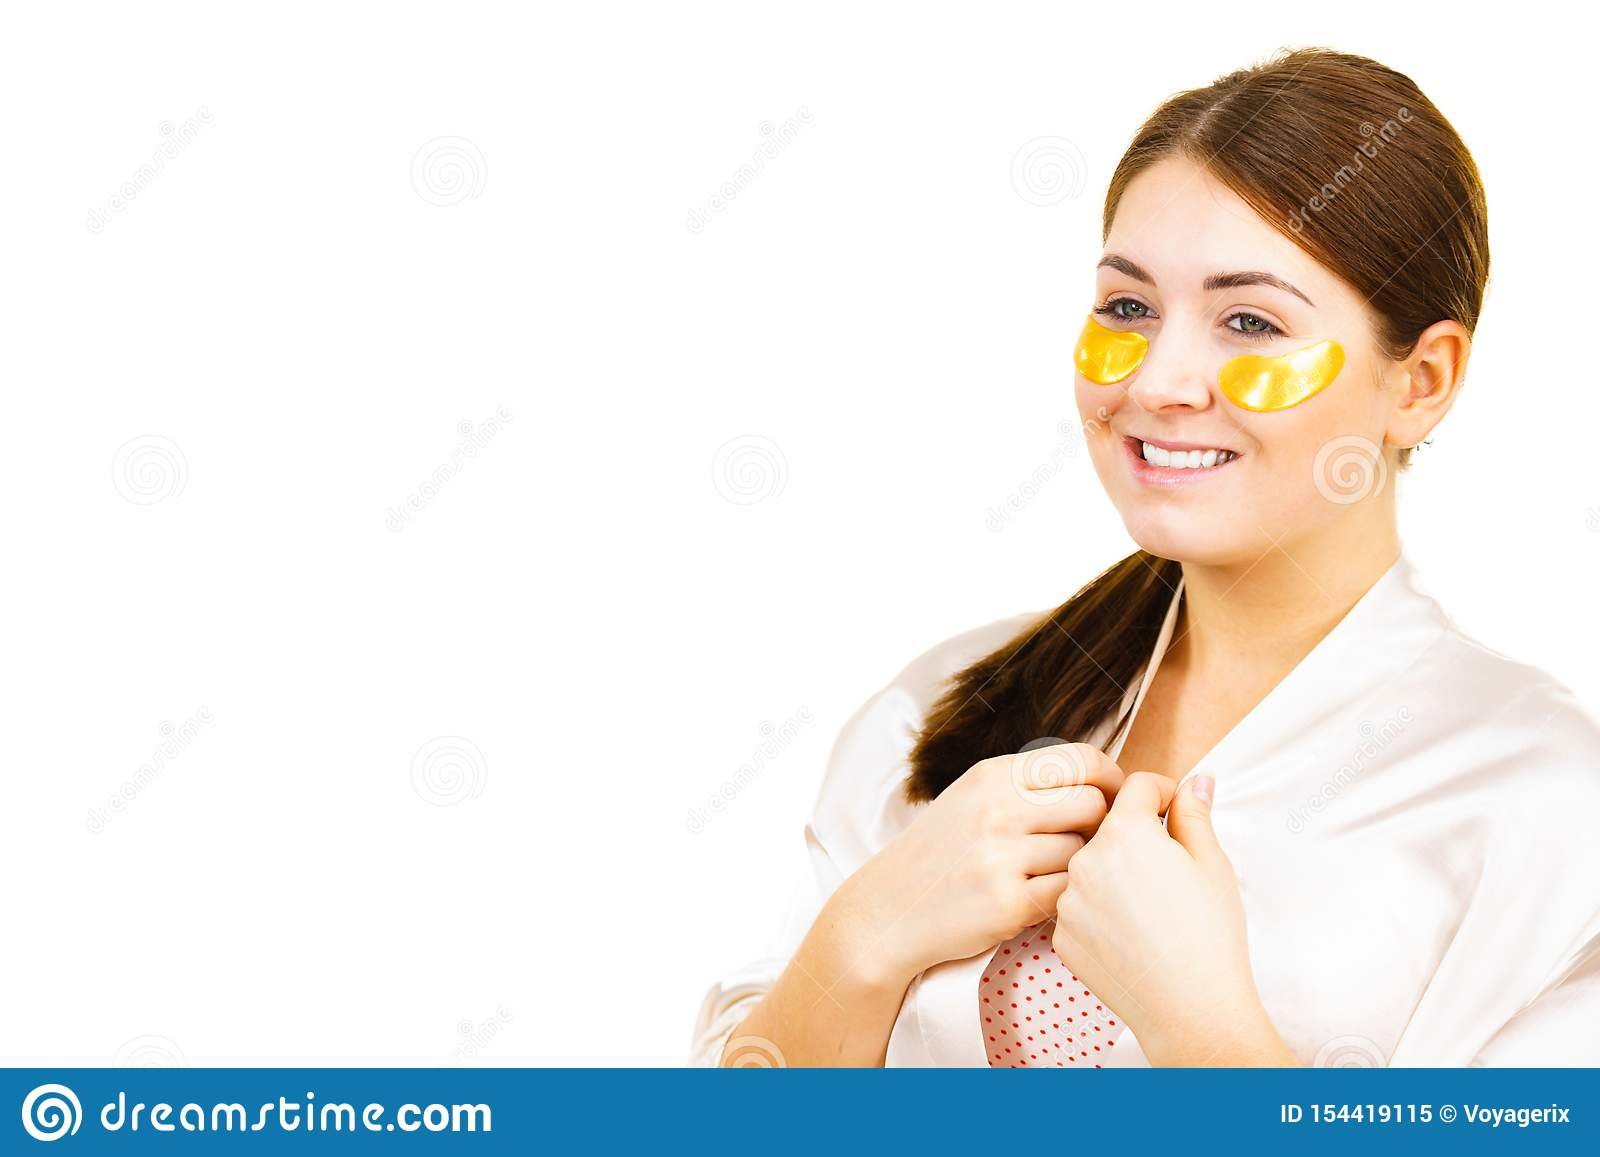 Woman With Gold Patches Under Eyes Stock Image - Image of ...